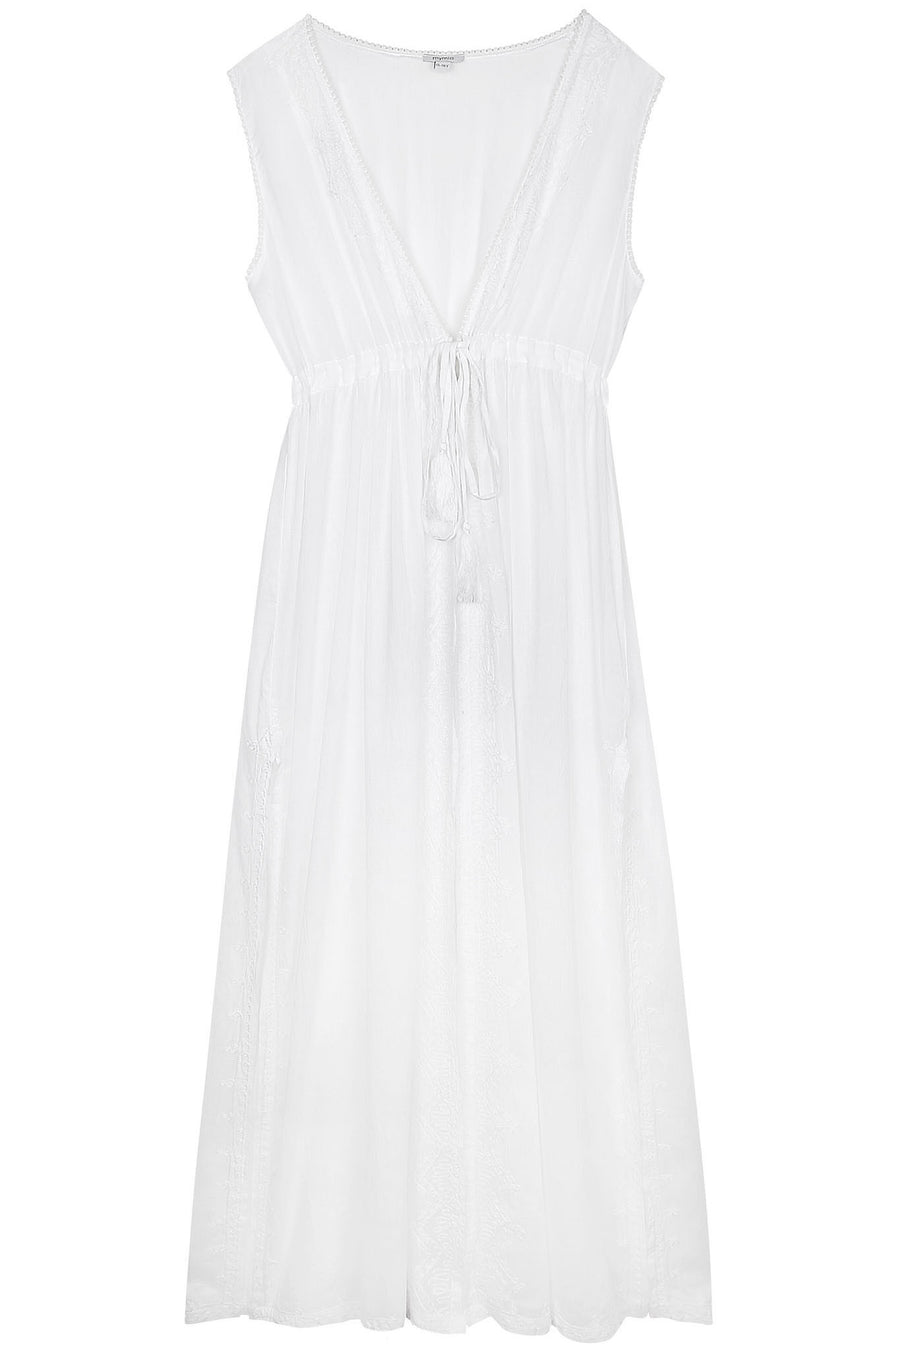 Mia Maxi Dress (Ages 11-14)